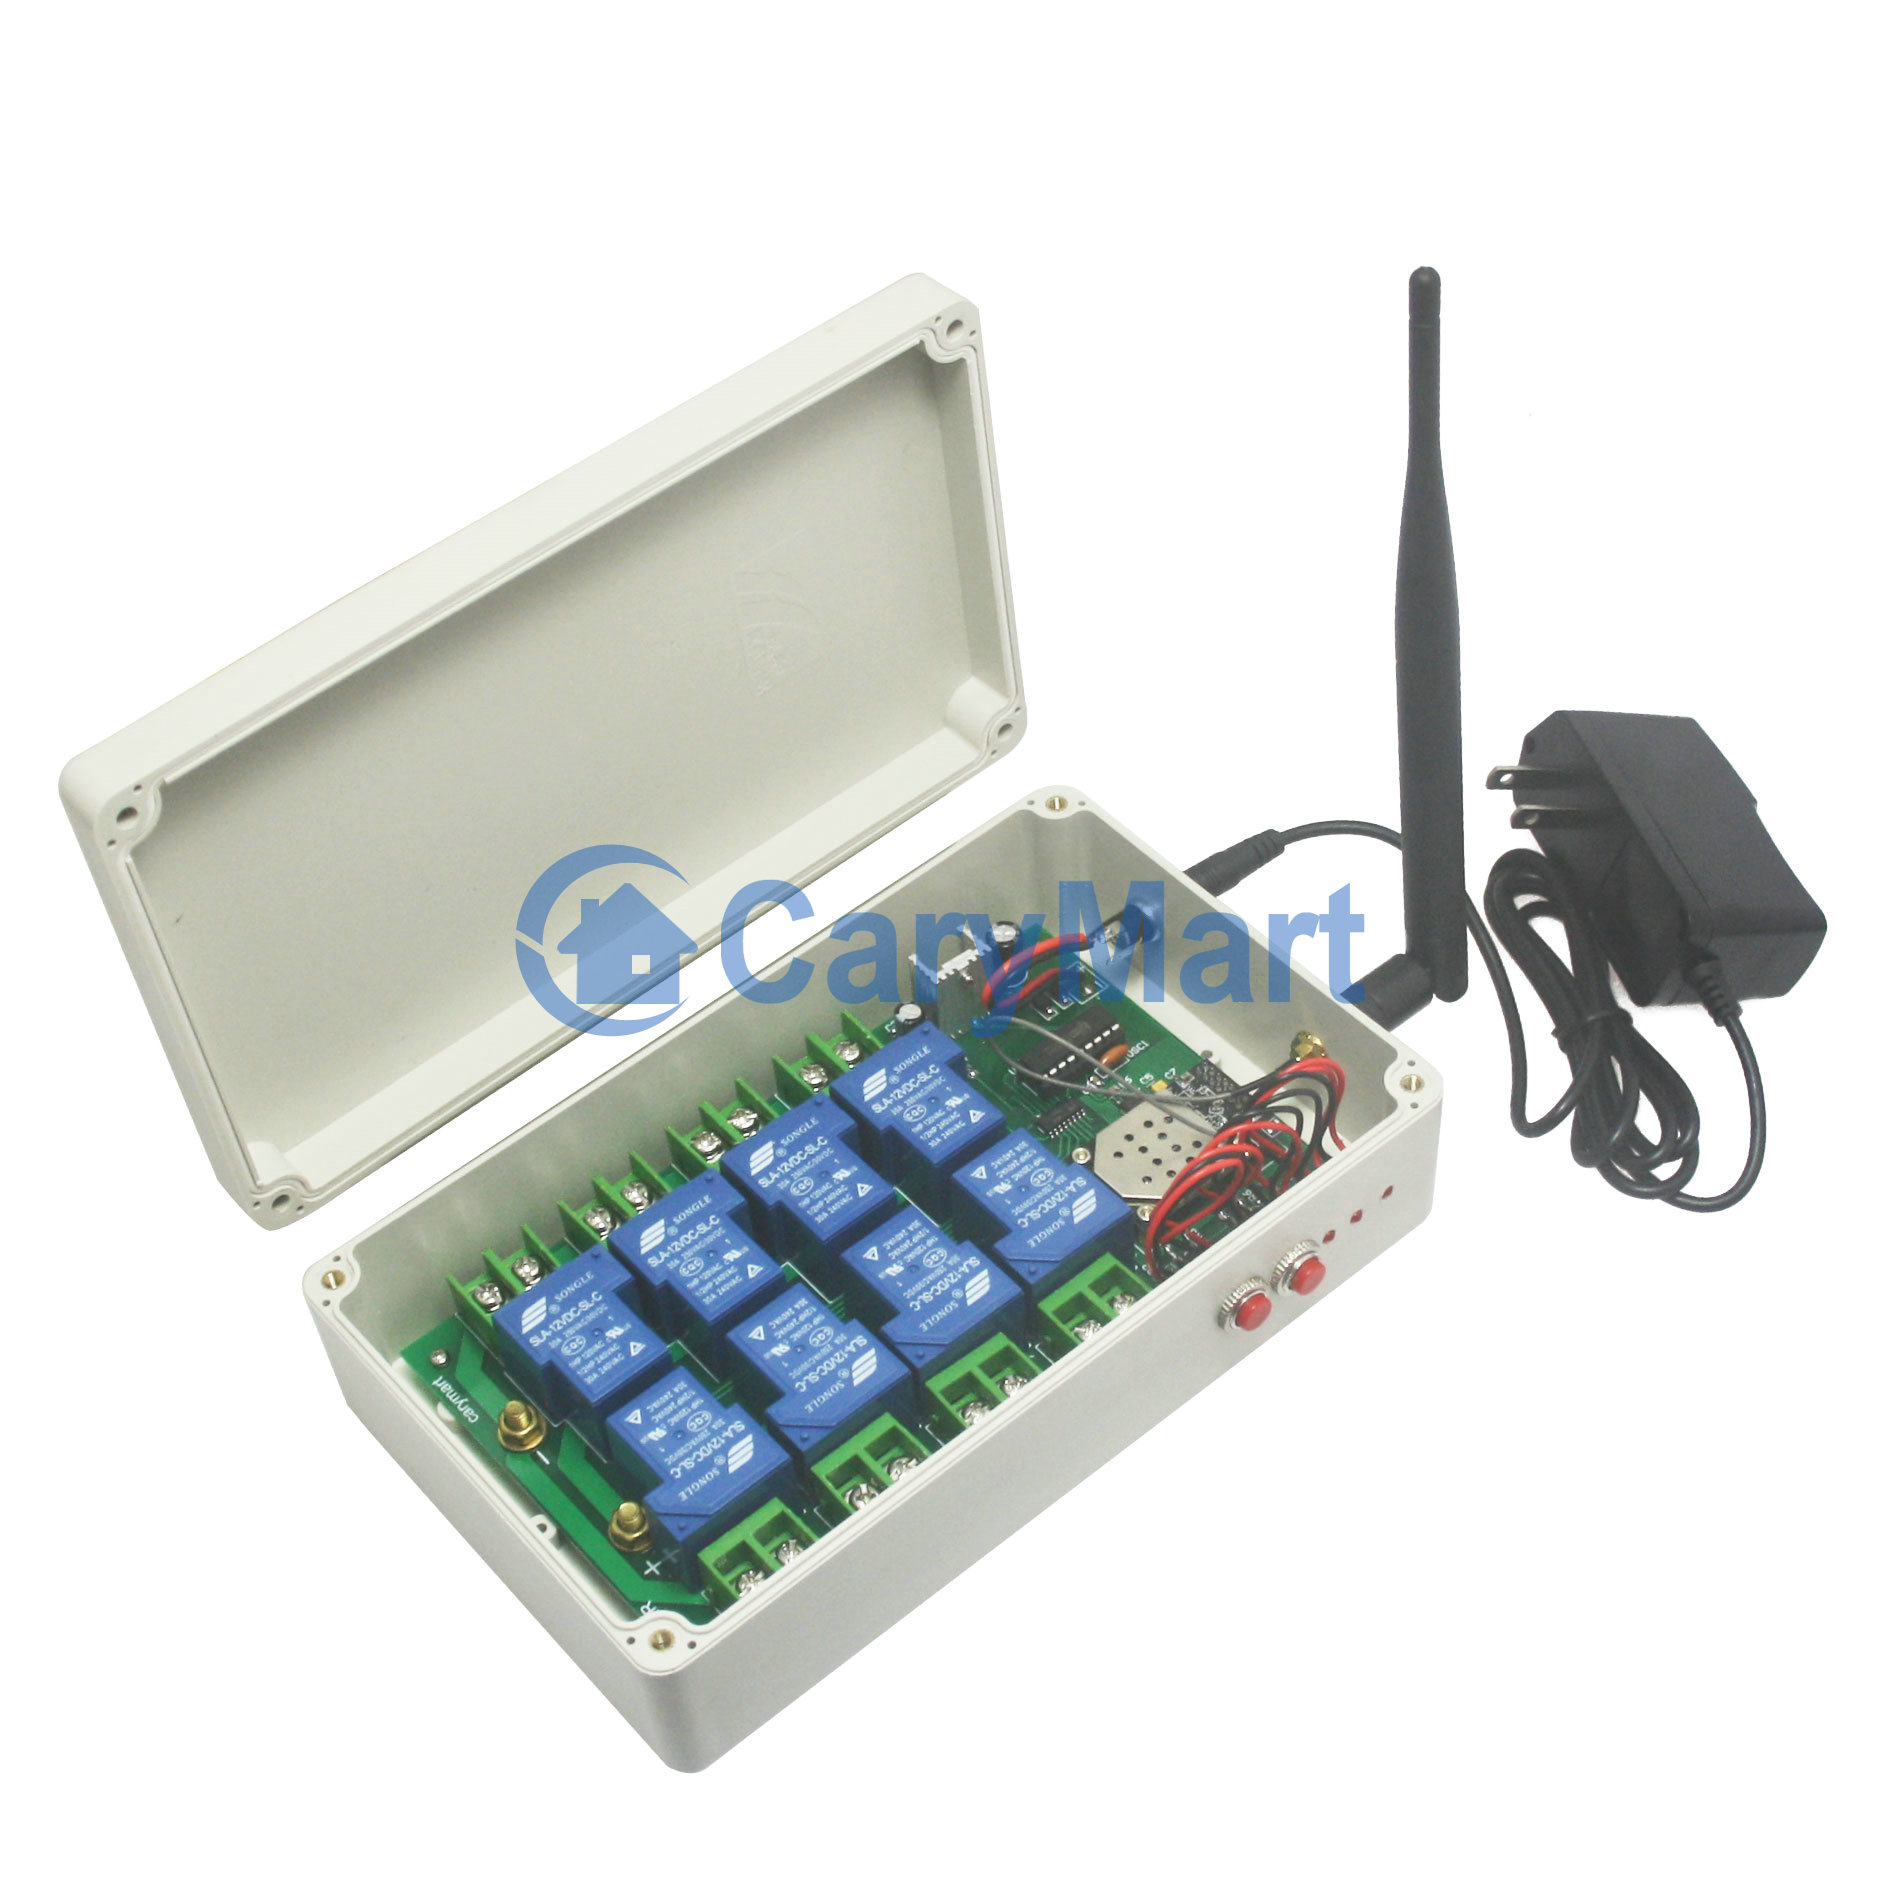 Controller for Android or iOS - 8 Channels AC DC 30A High Power Output